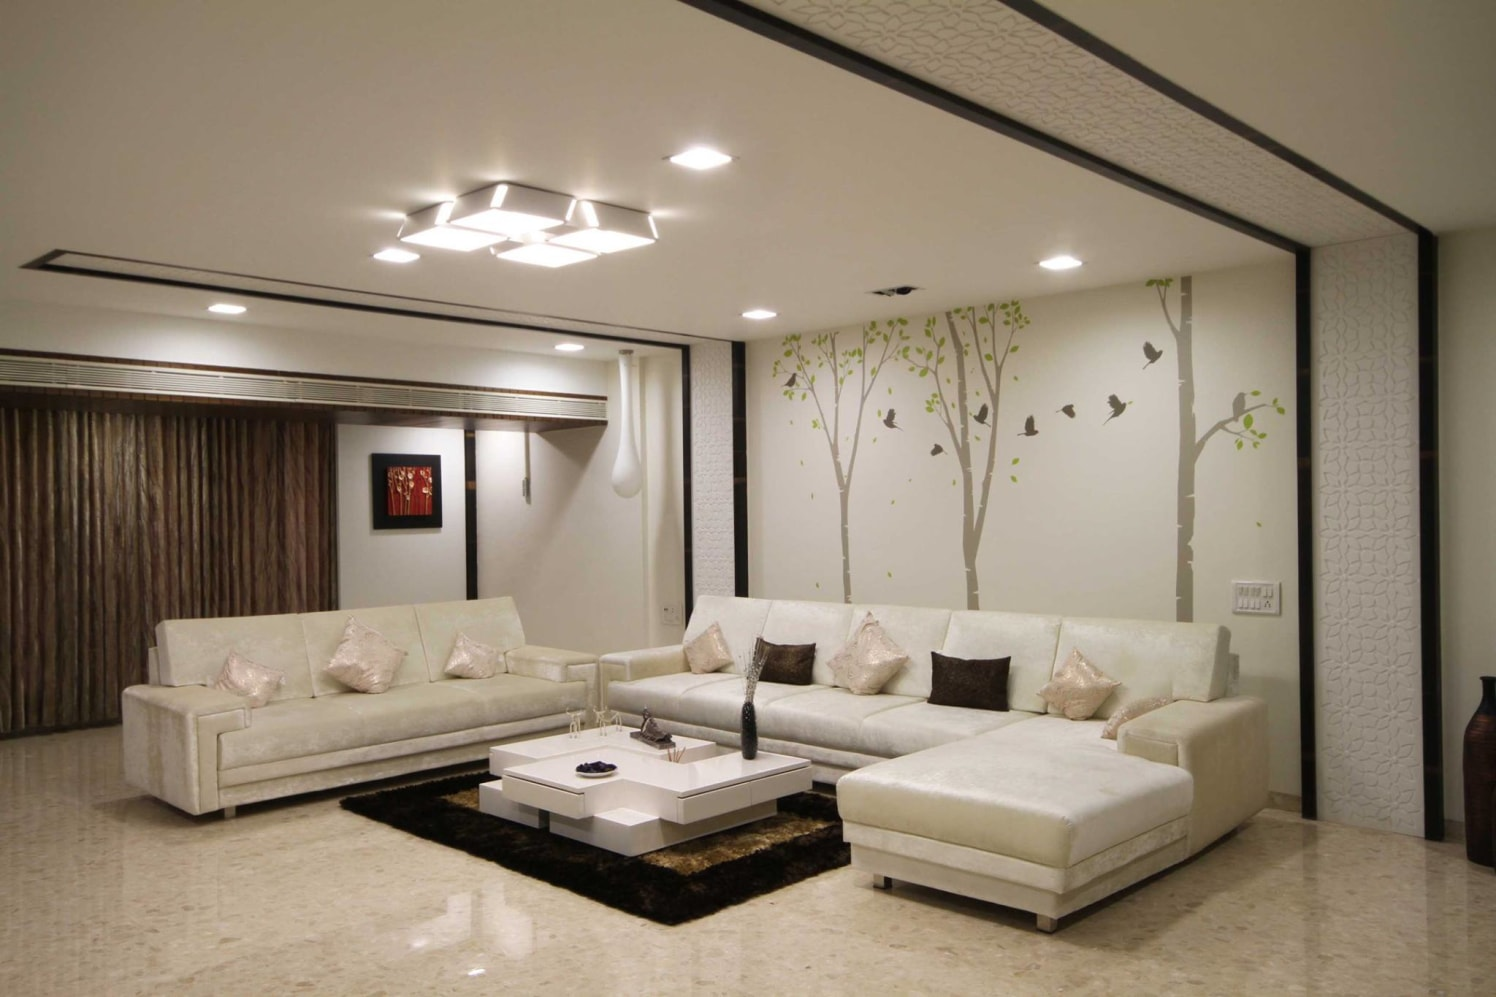 White Themed Living Room With Tree Wall Art by Ankur Tulsyan  Living-room Modern | Interior Design Photos & Ideas